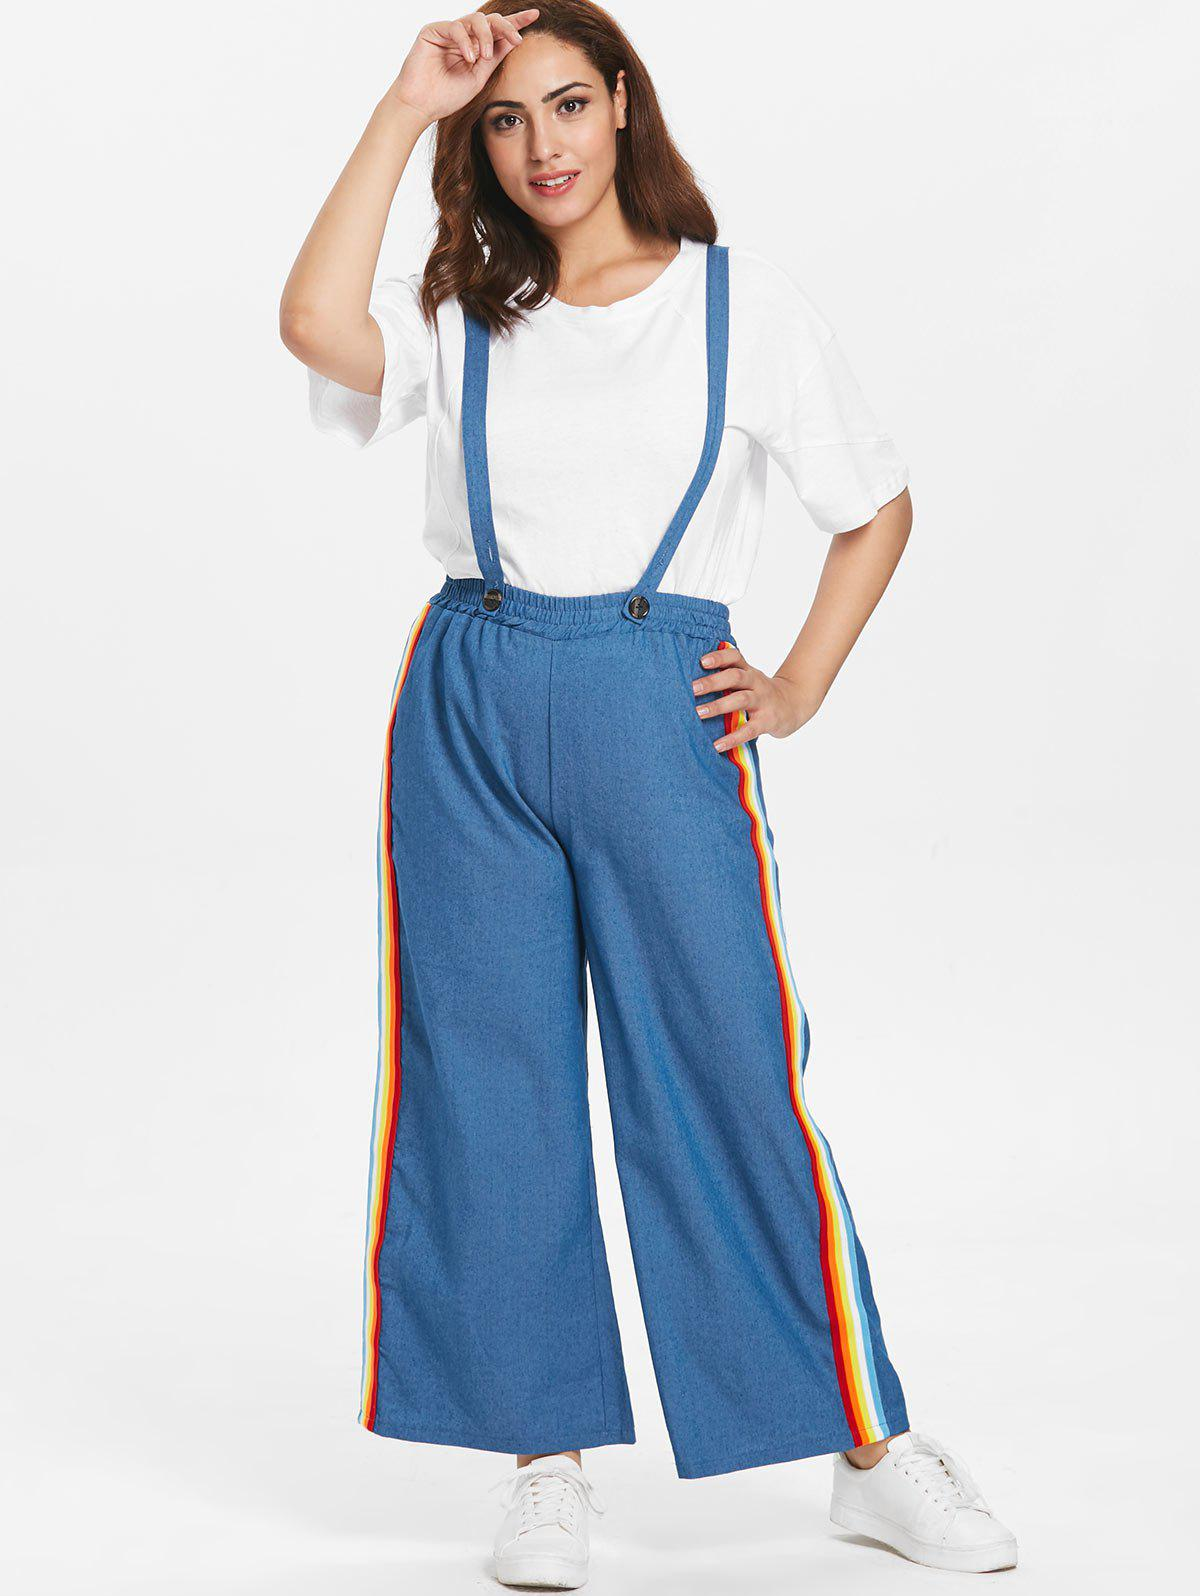 b91f7840ff8 46% OFF  Plus Size Rainbow Striped Overall Pants